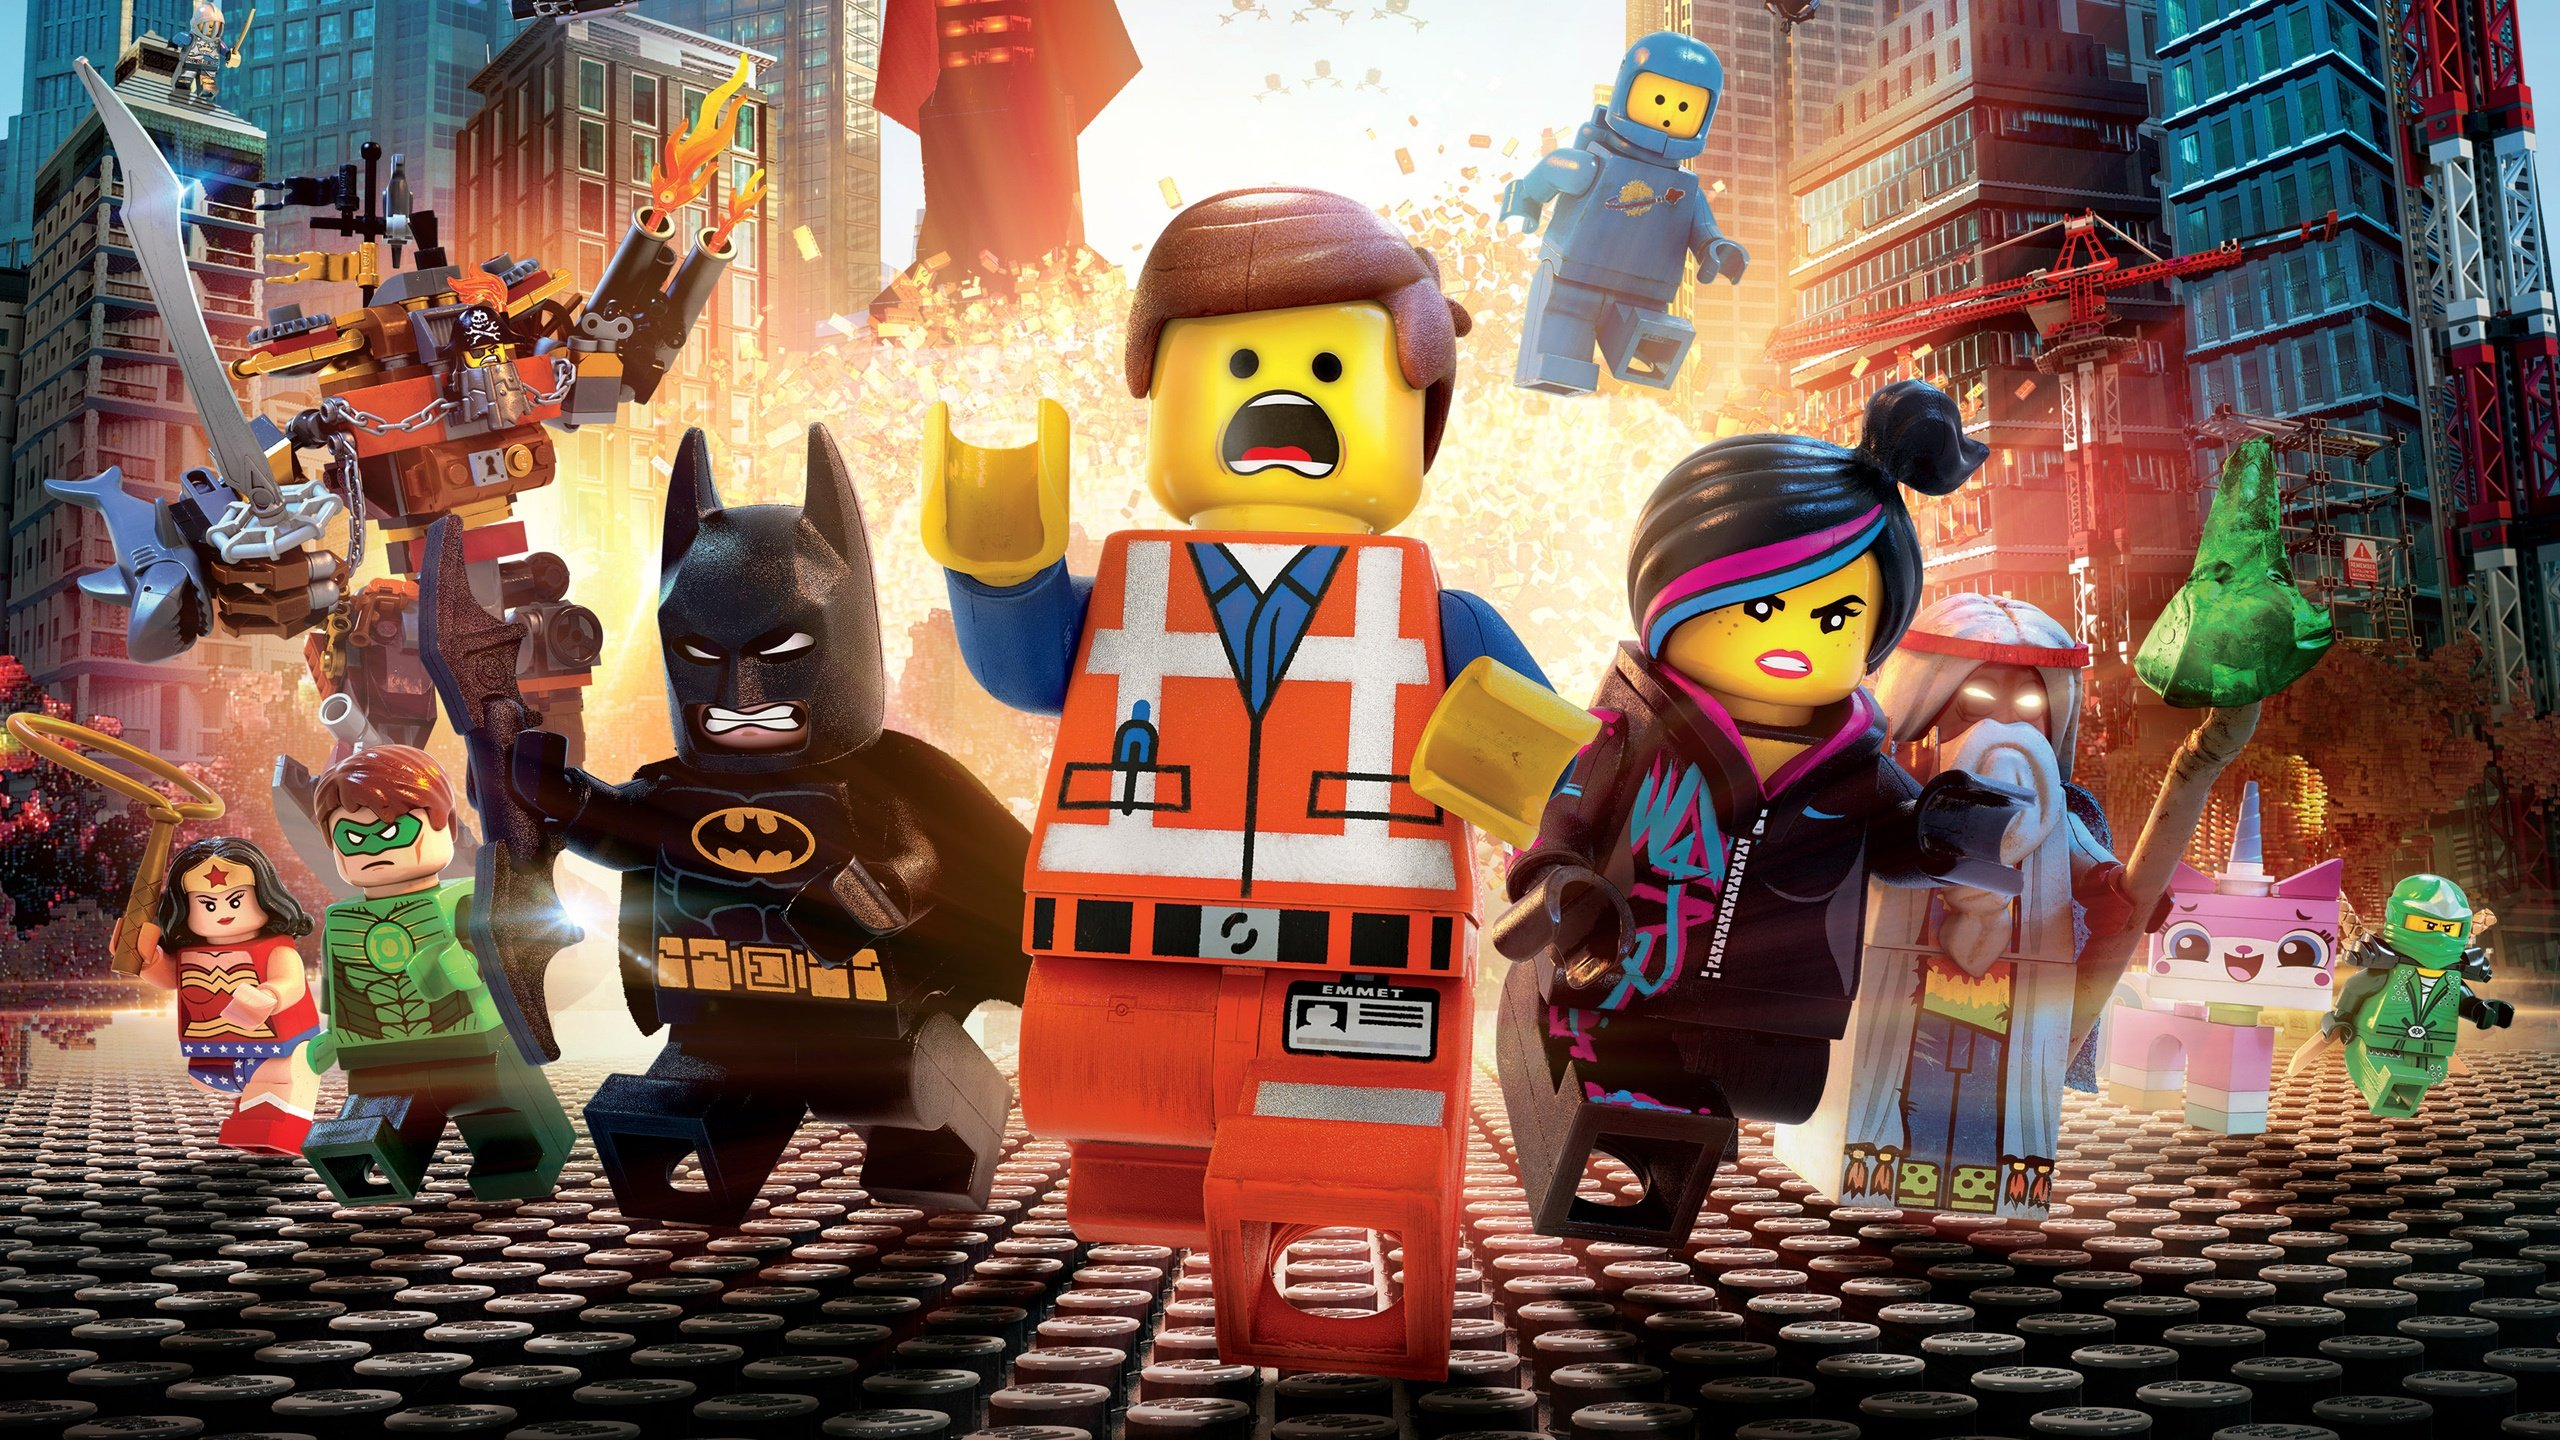 lego movie city background - photo #44